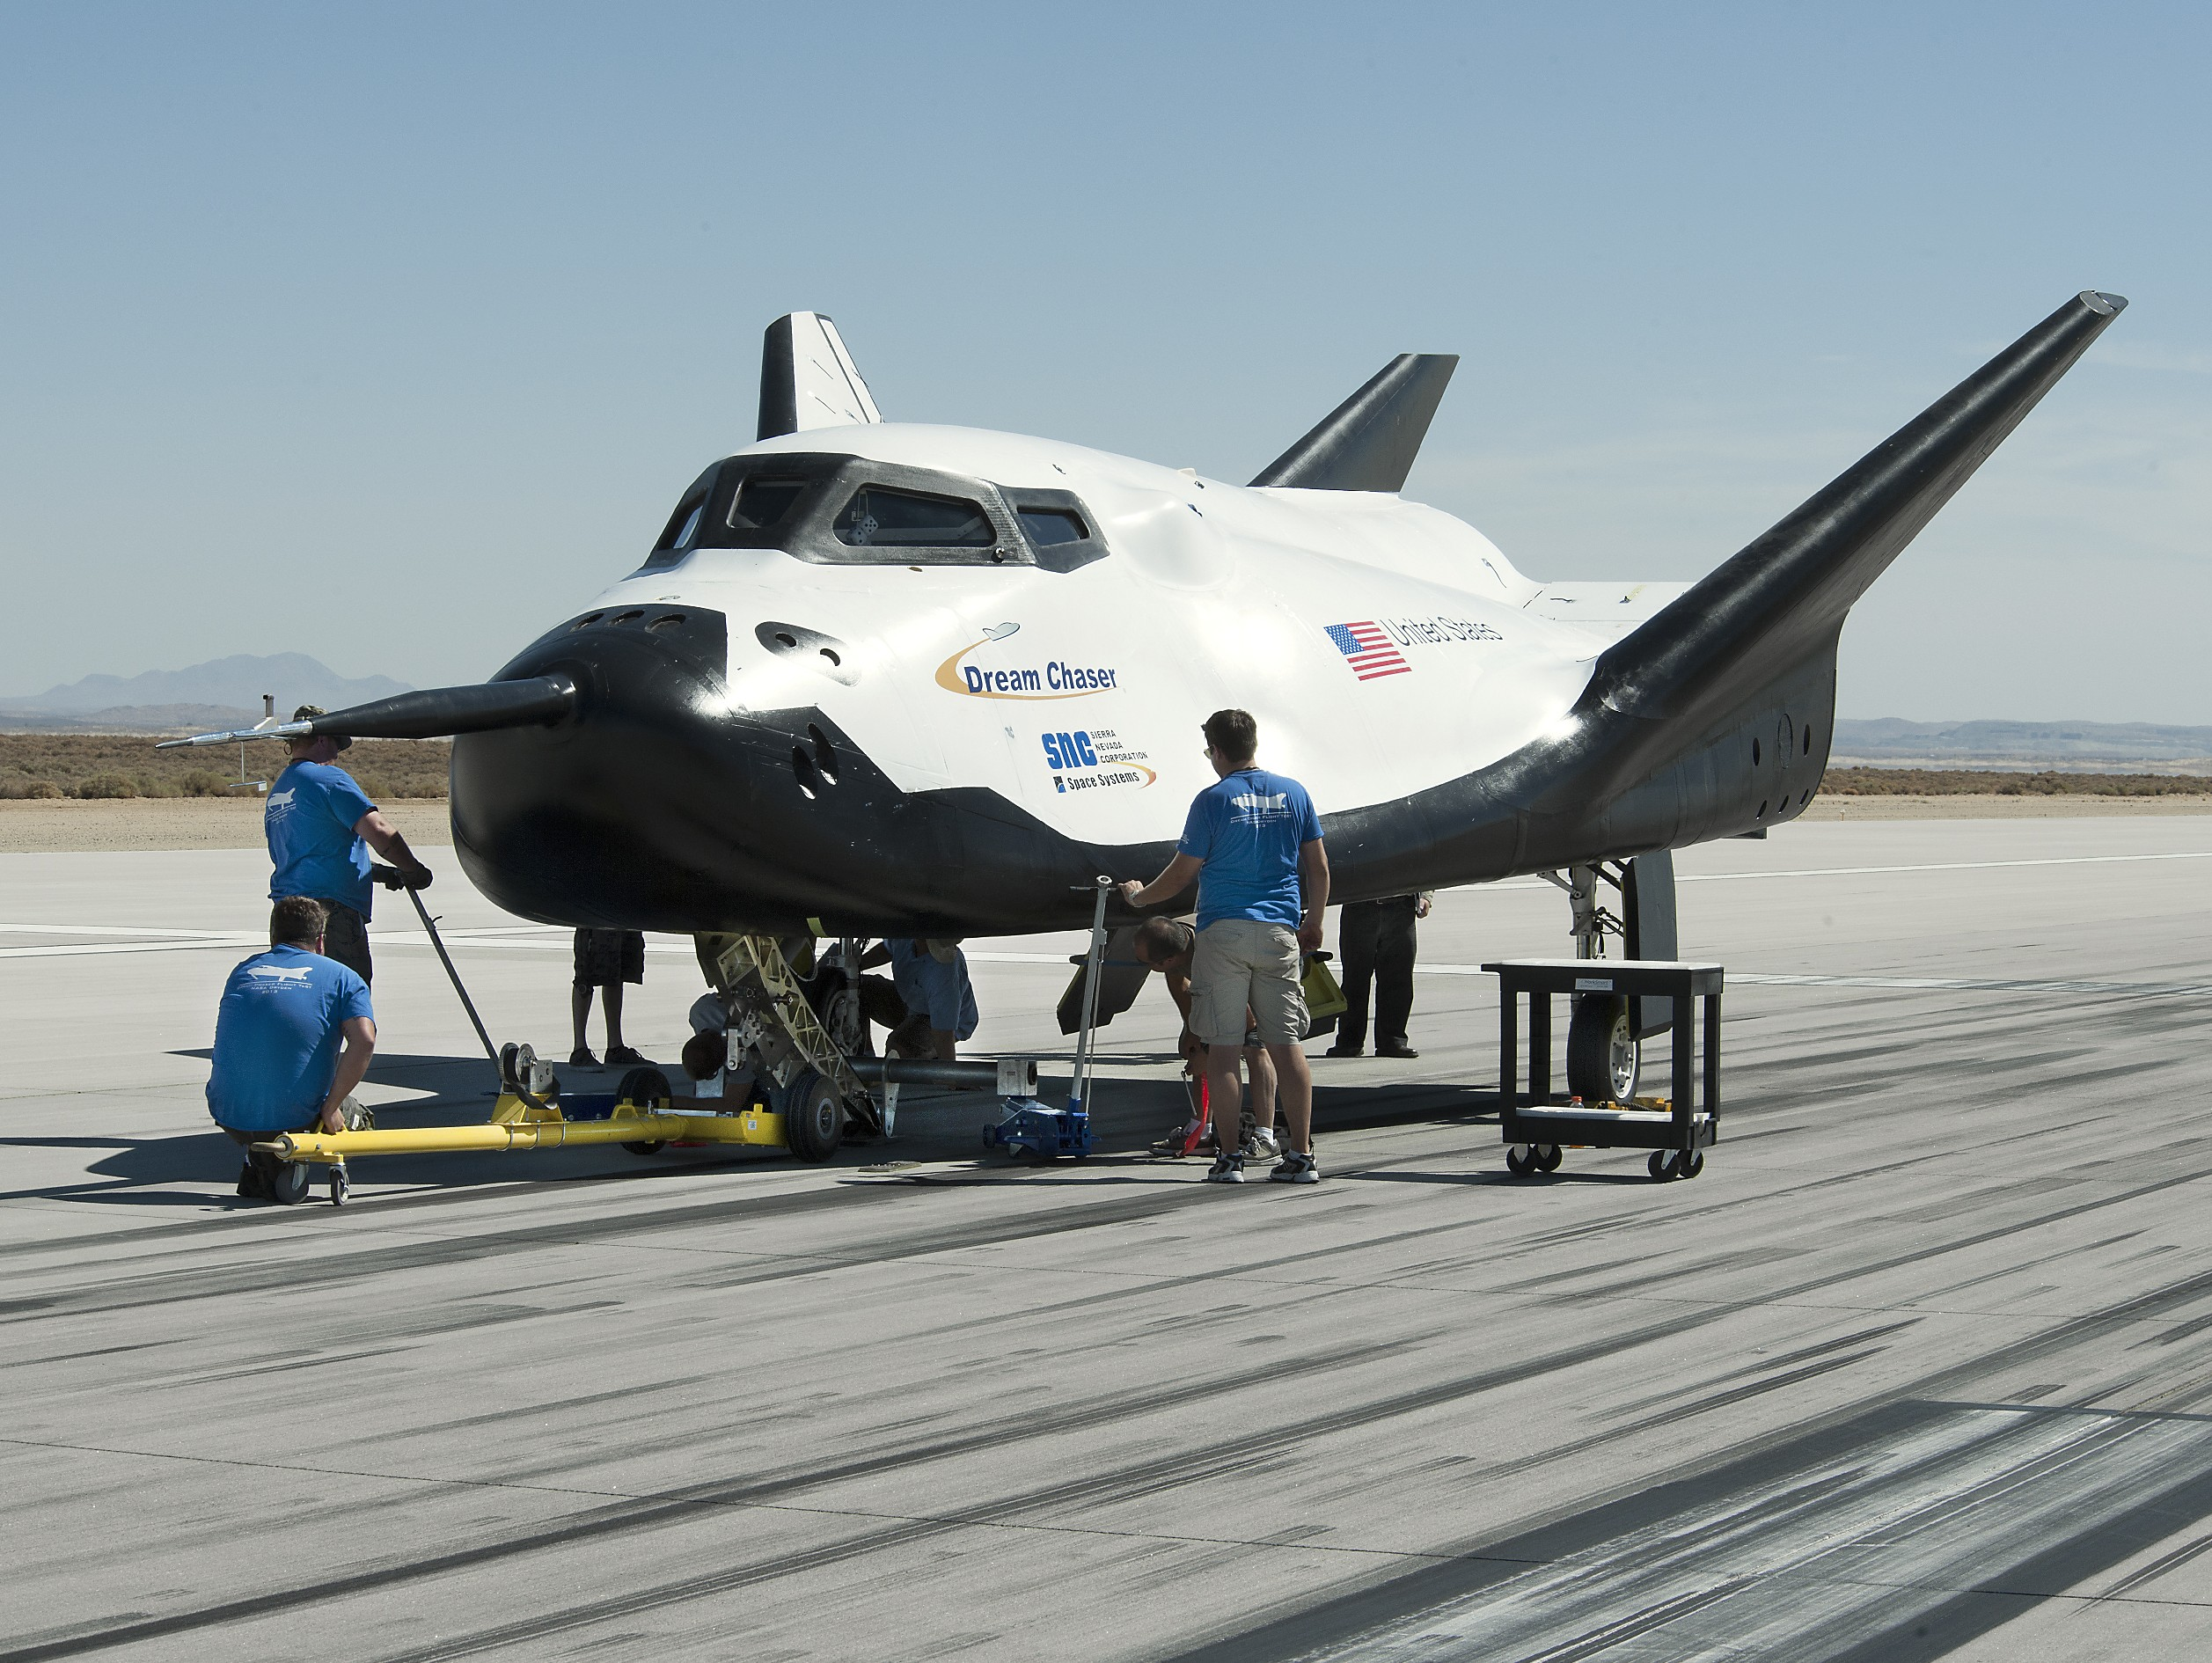 Dream Chaser Space Plane will soon begin Full-Scale Production